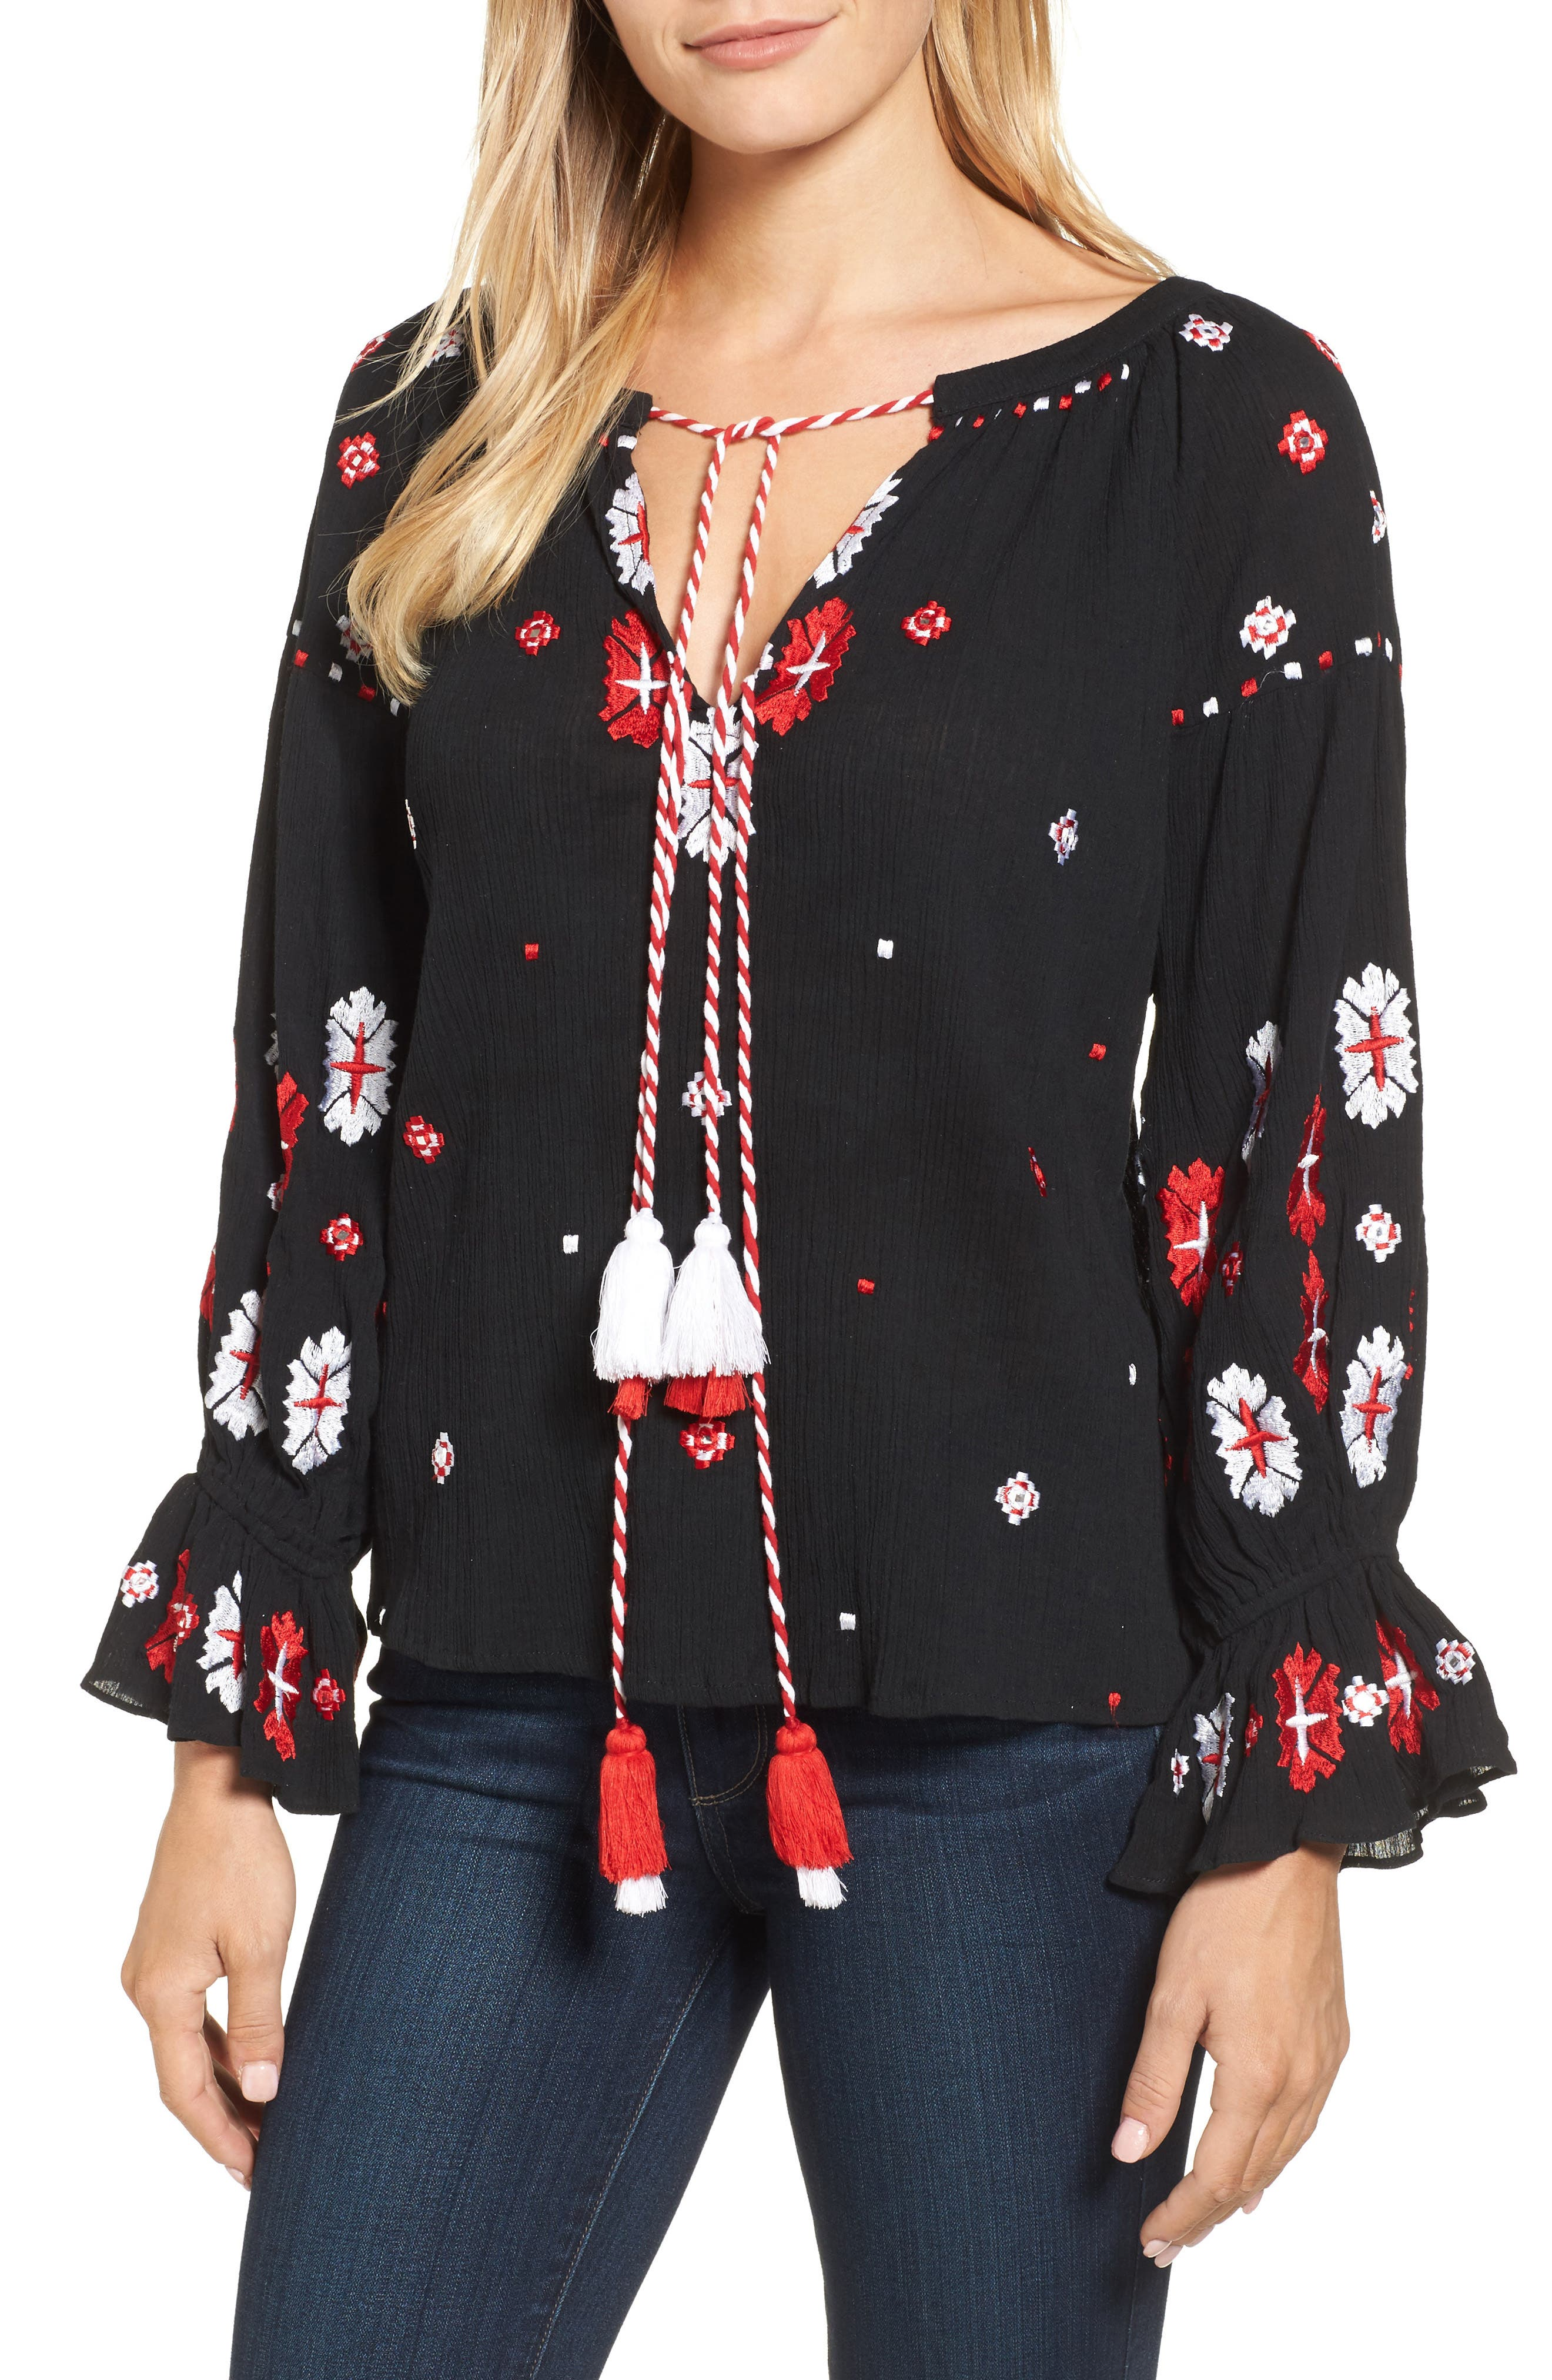 Myra Hand Embroidered Blouse,                         Main,                         color, Black